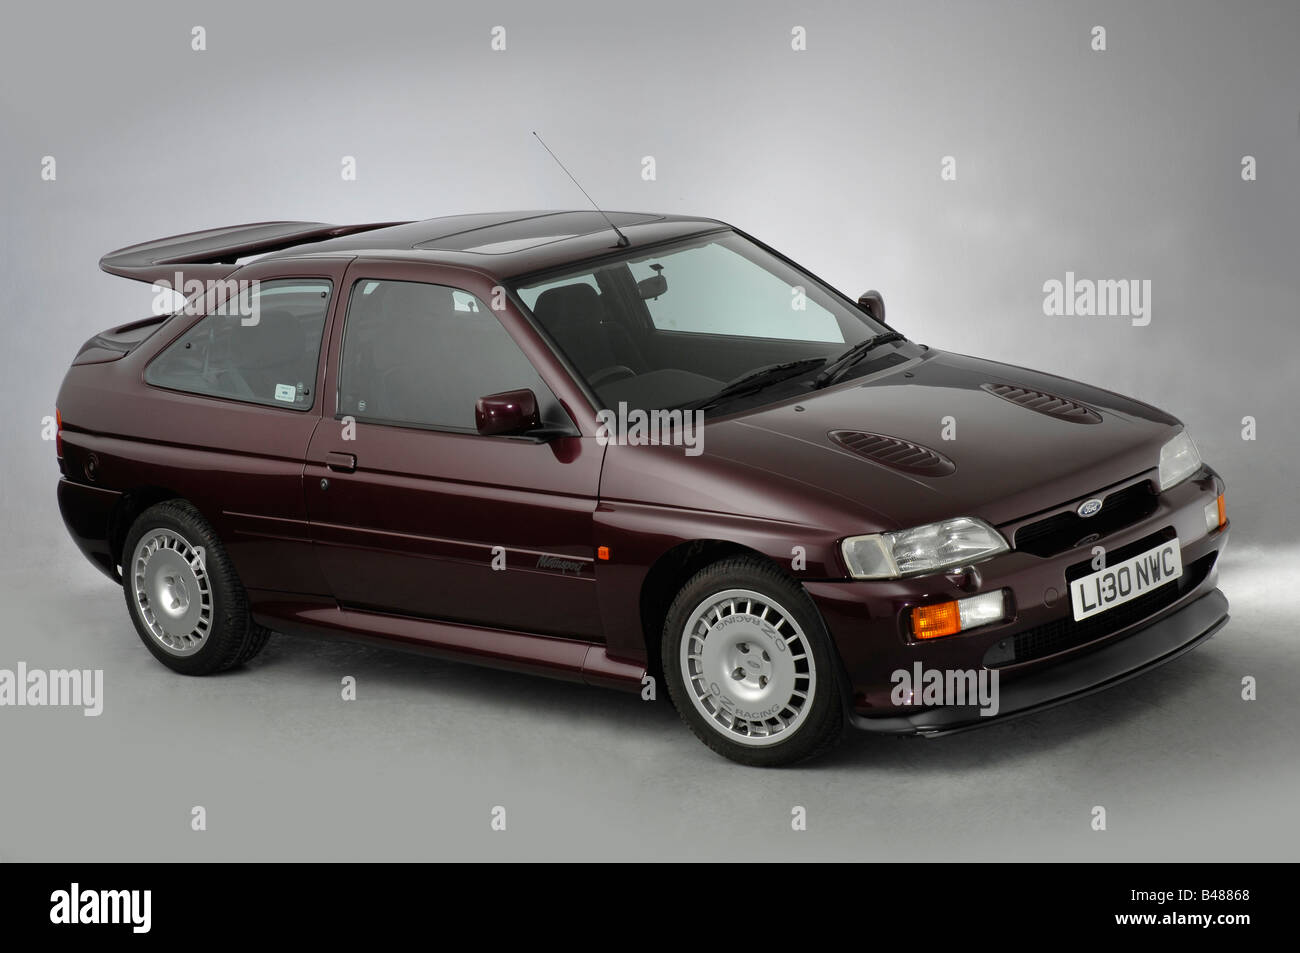 Ford Escort Rs Cosworth Stock Photos & Ford Escort Rs Cosworth Stock ...